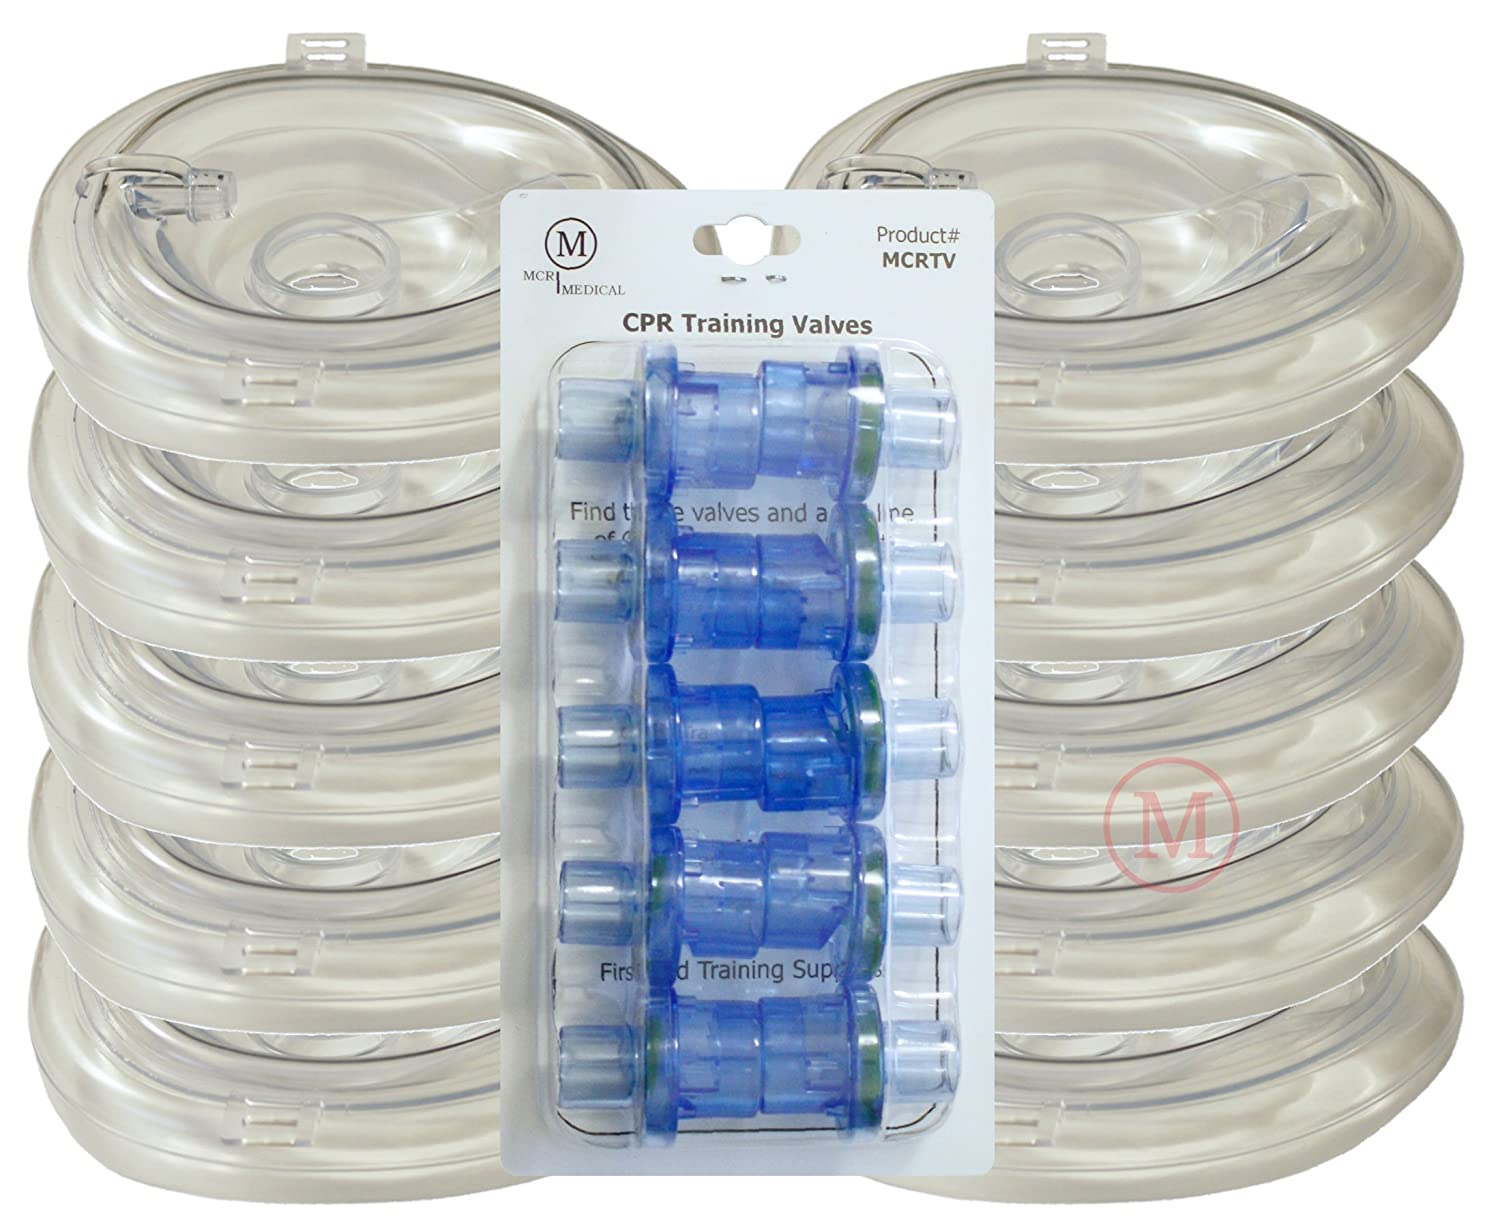 MCR Medical Supply MCRTM-AC PVC Training CPR Pocket Resuscitator Face Masks and Valves, Adult Collapsible (Pack of 10)